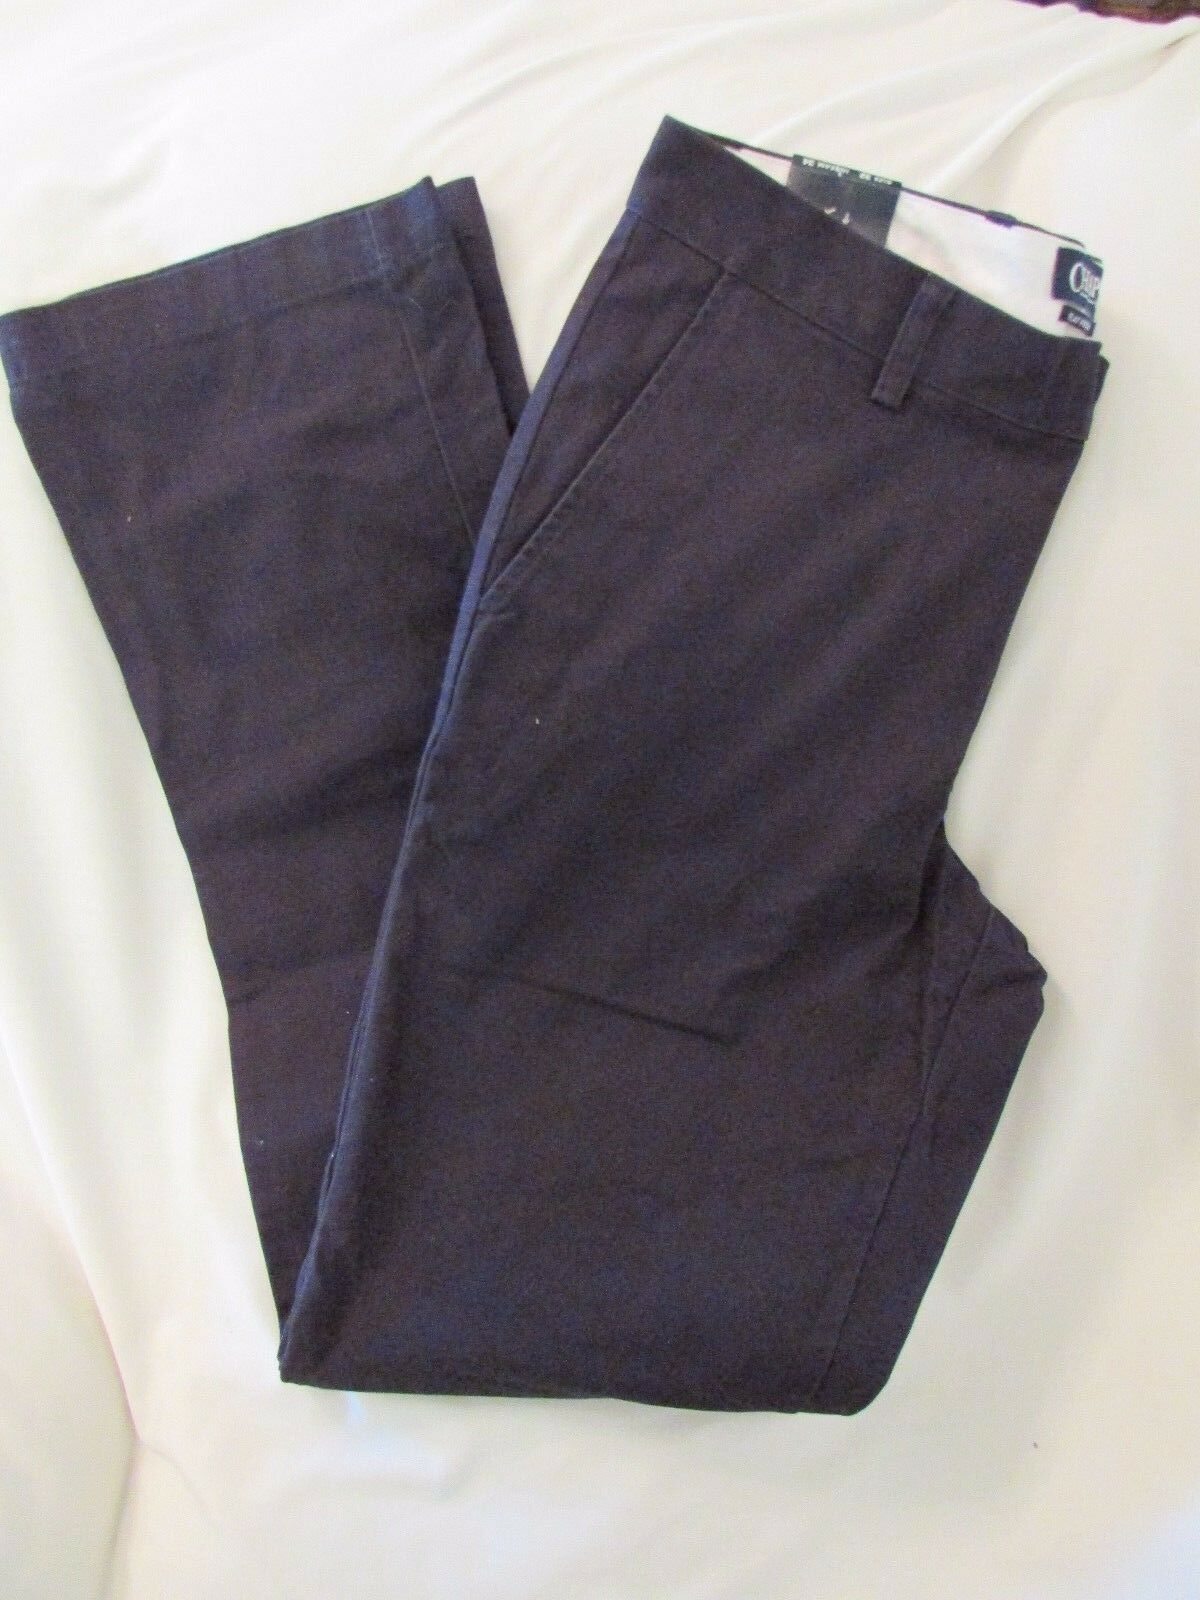 Men's  Chaps  Size 36x34, Navy, Classic, Straight, Flat Front, Pants